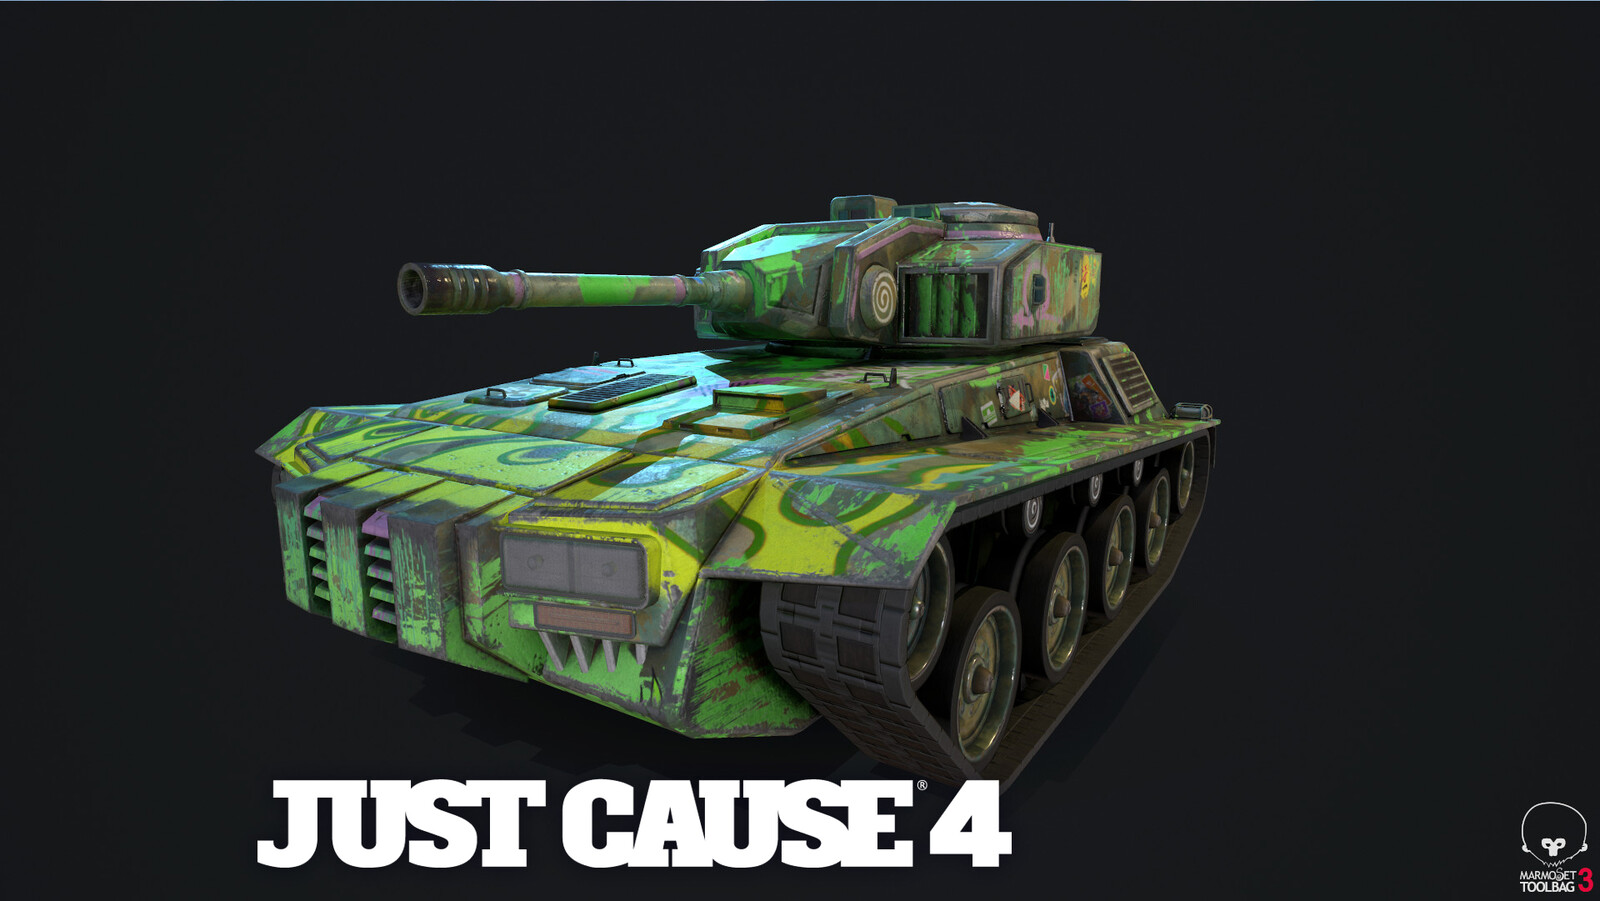 Just Cause 4 Rebel Vehicles and Weapons